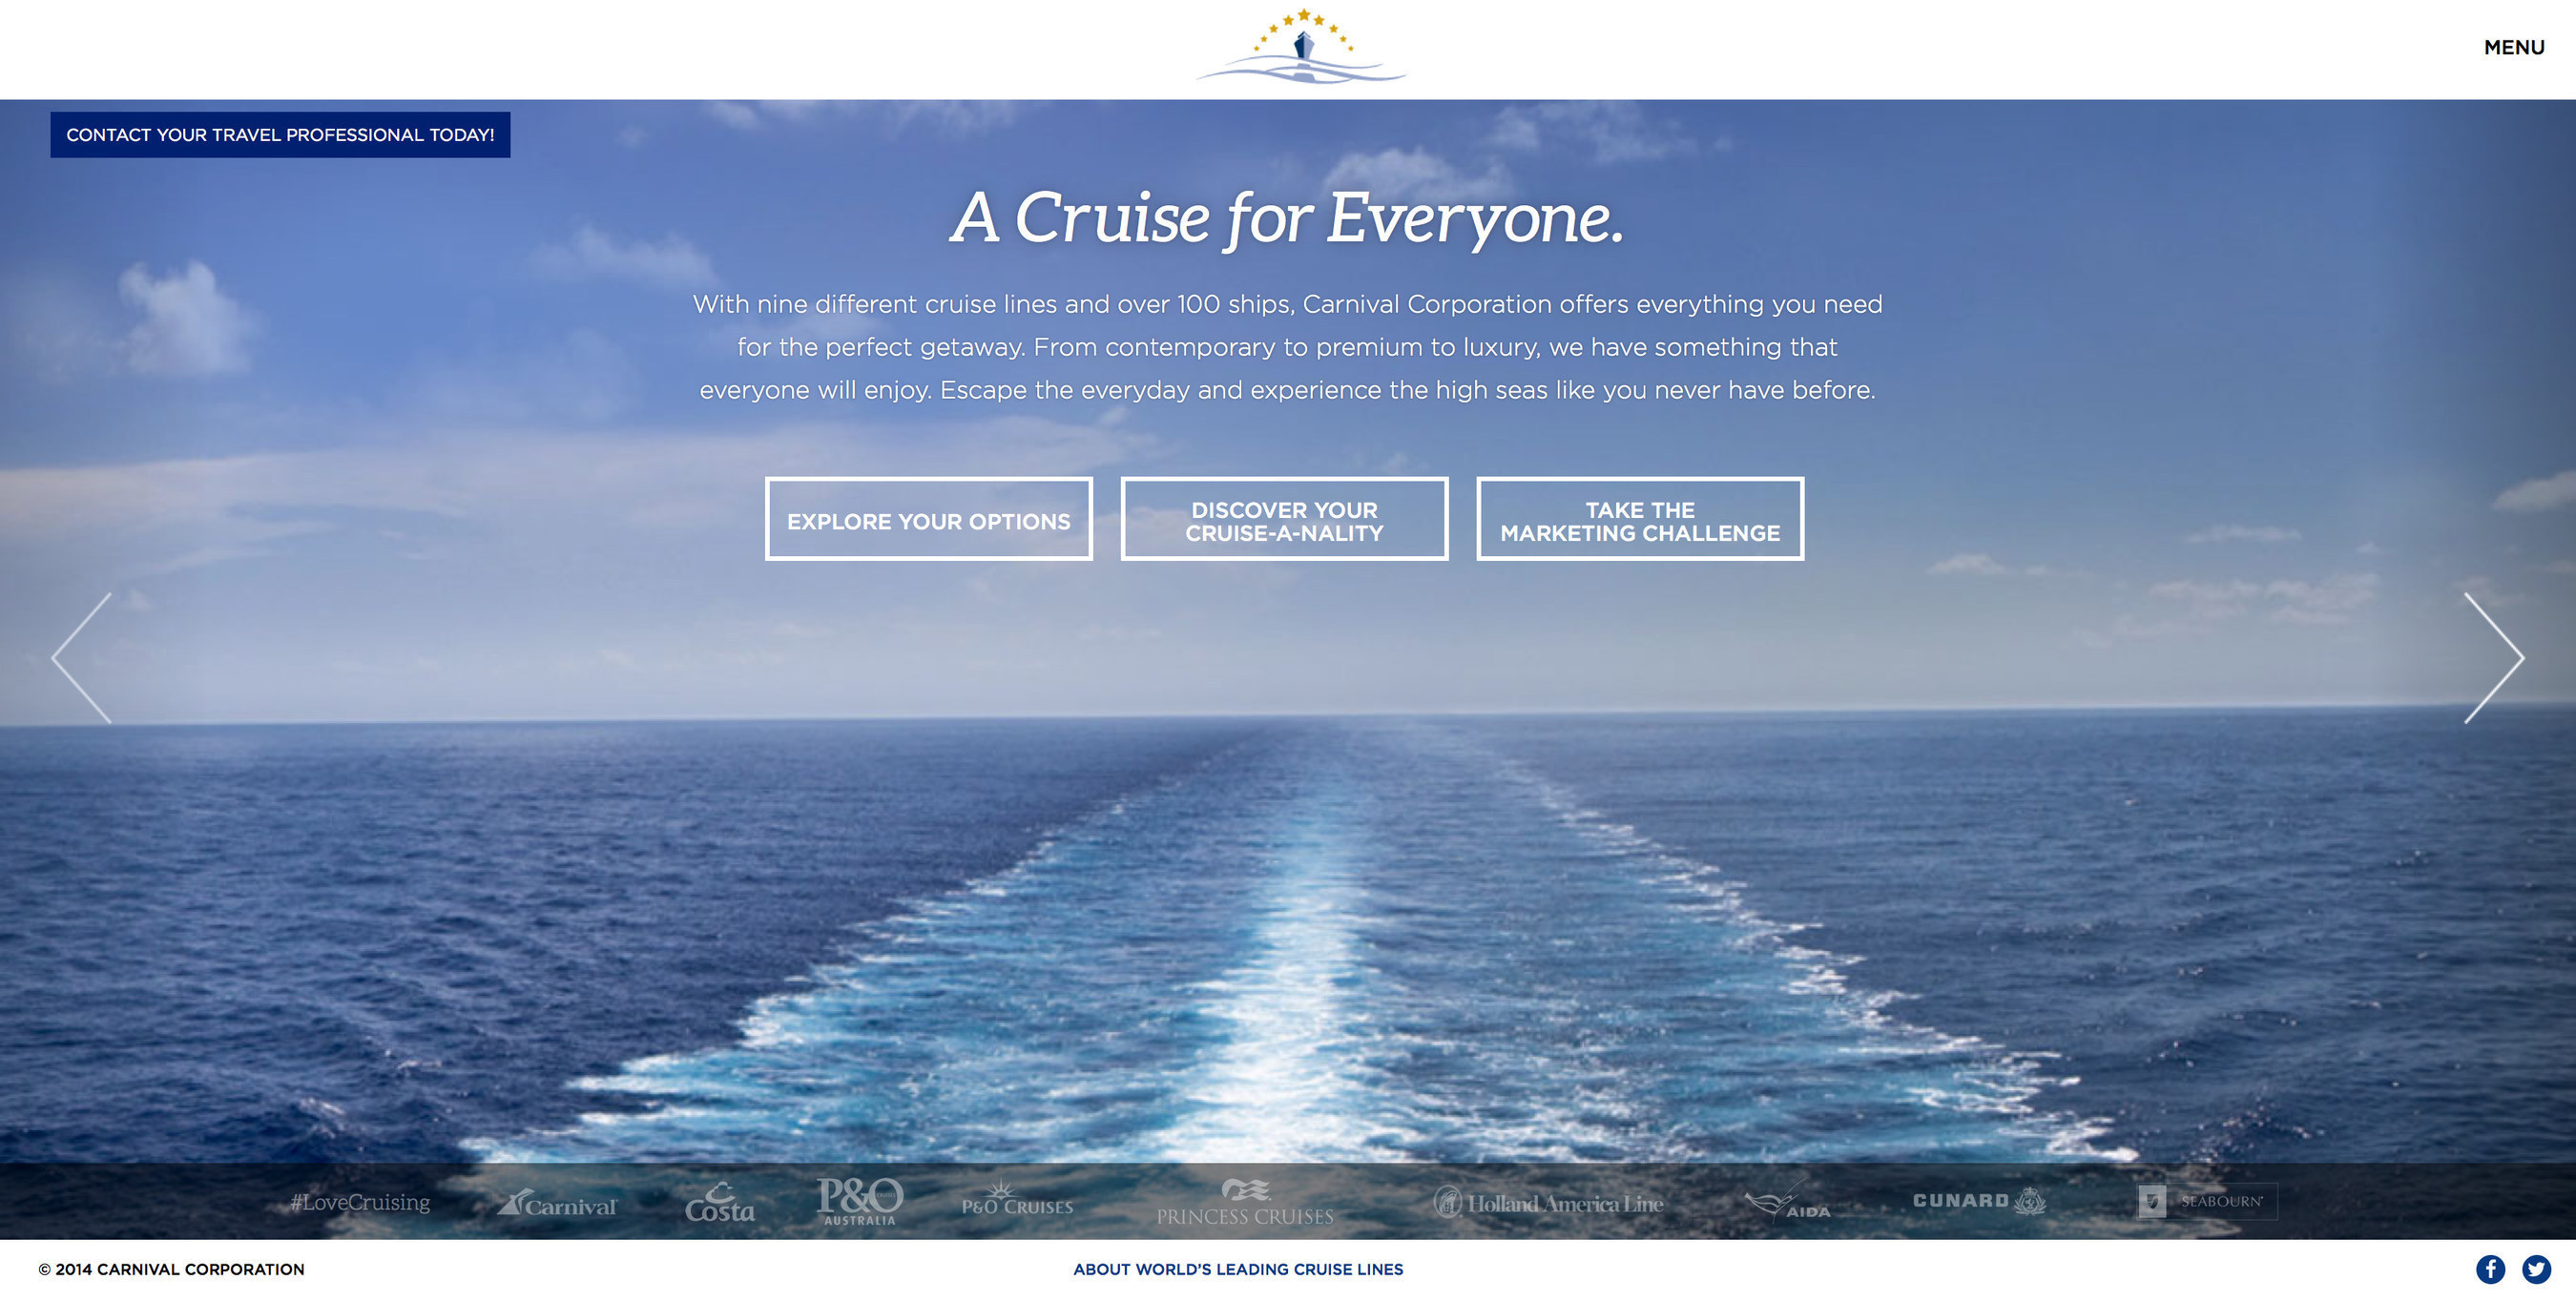 Carnival Corporation's newly redesigned World's Leading Cruise Lines website - ...